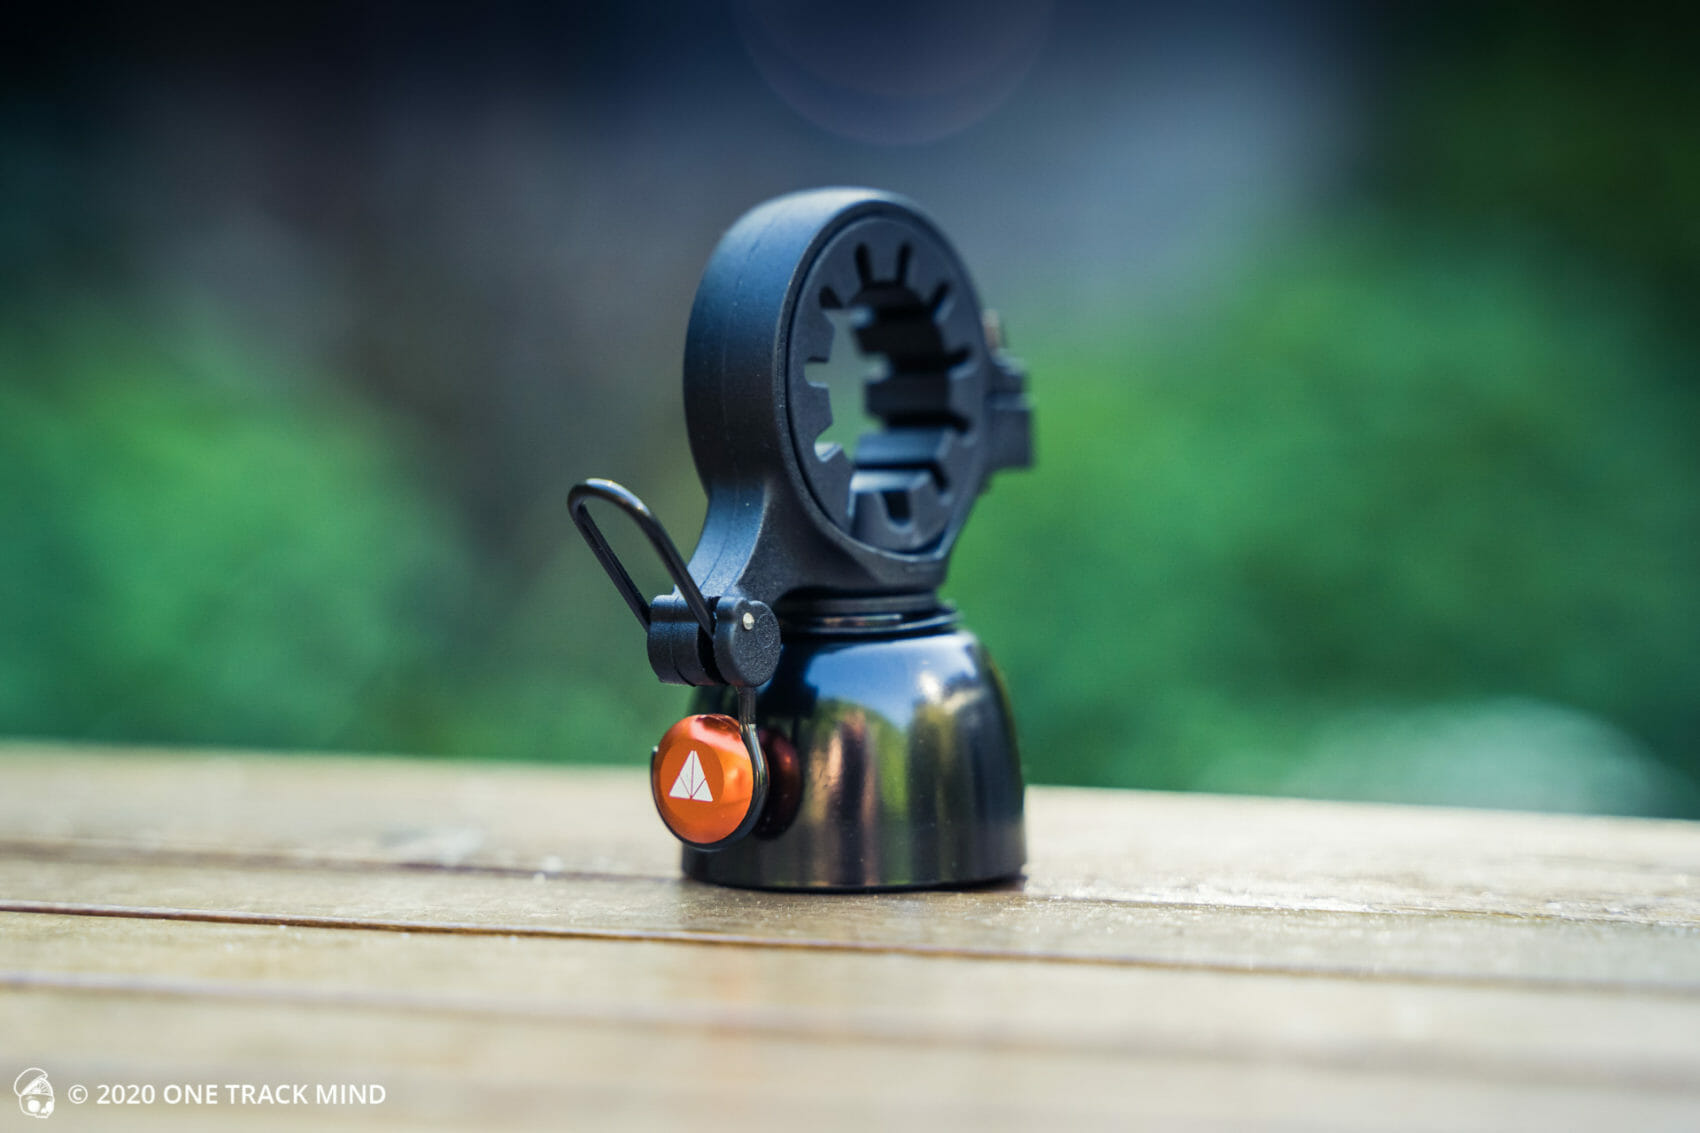 The Granite Cricket Bell Review